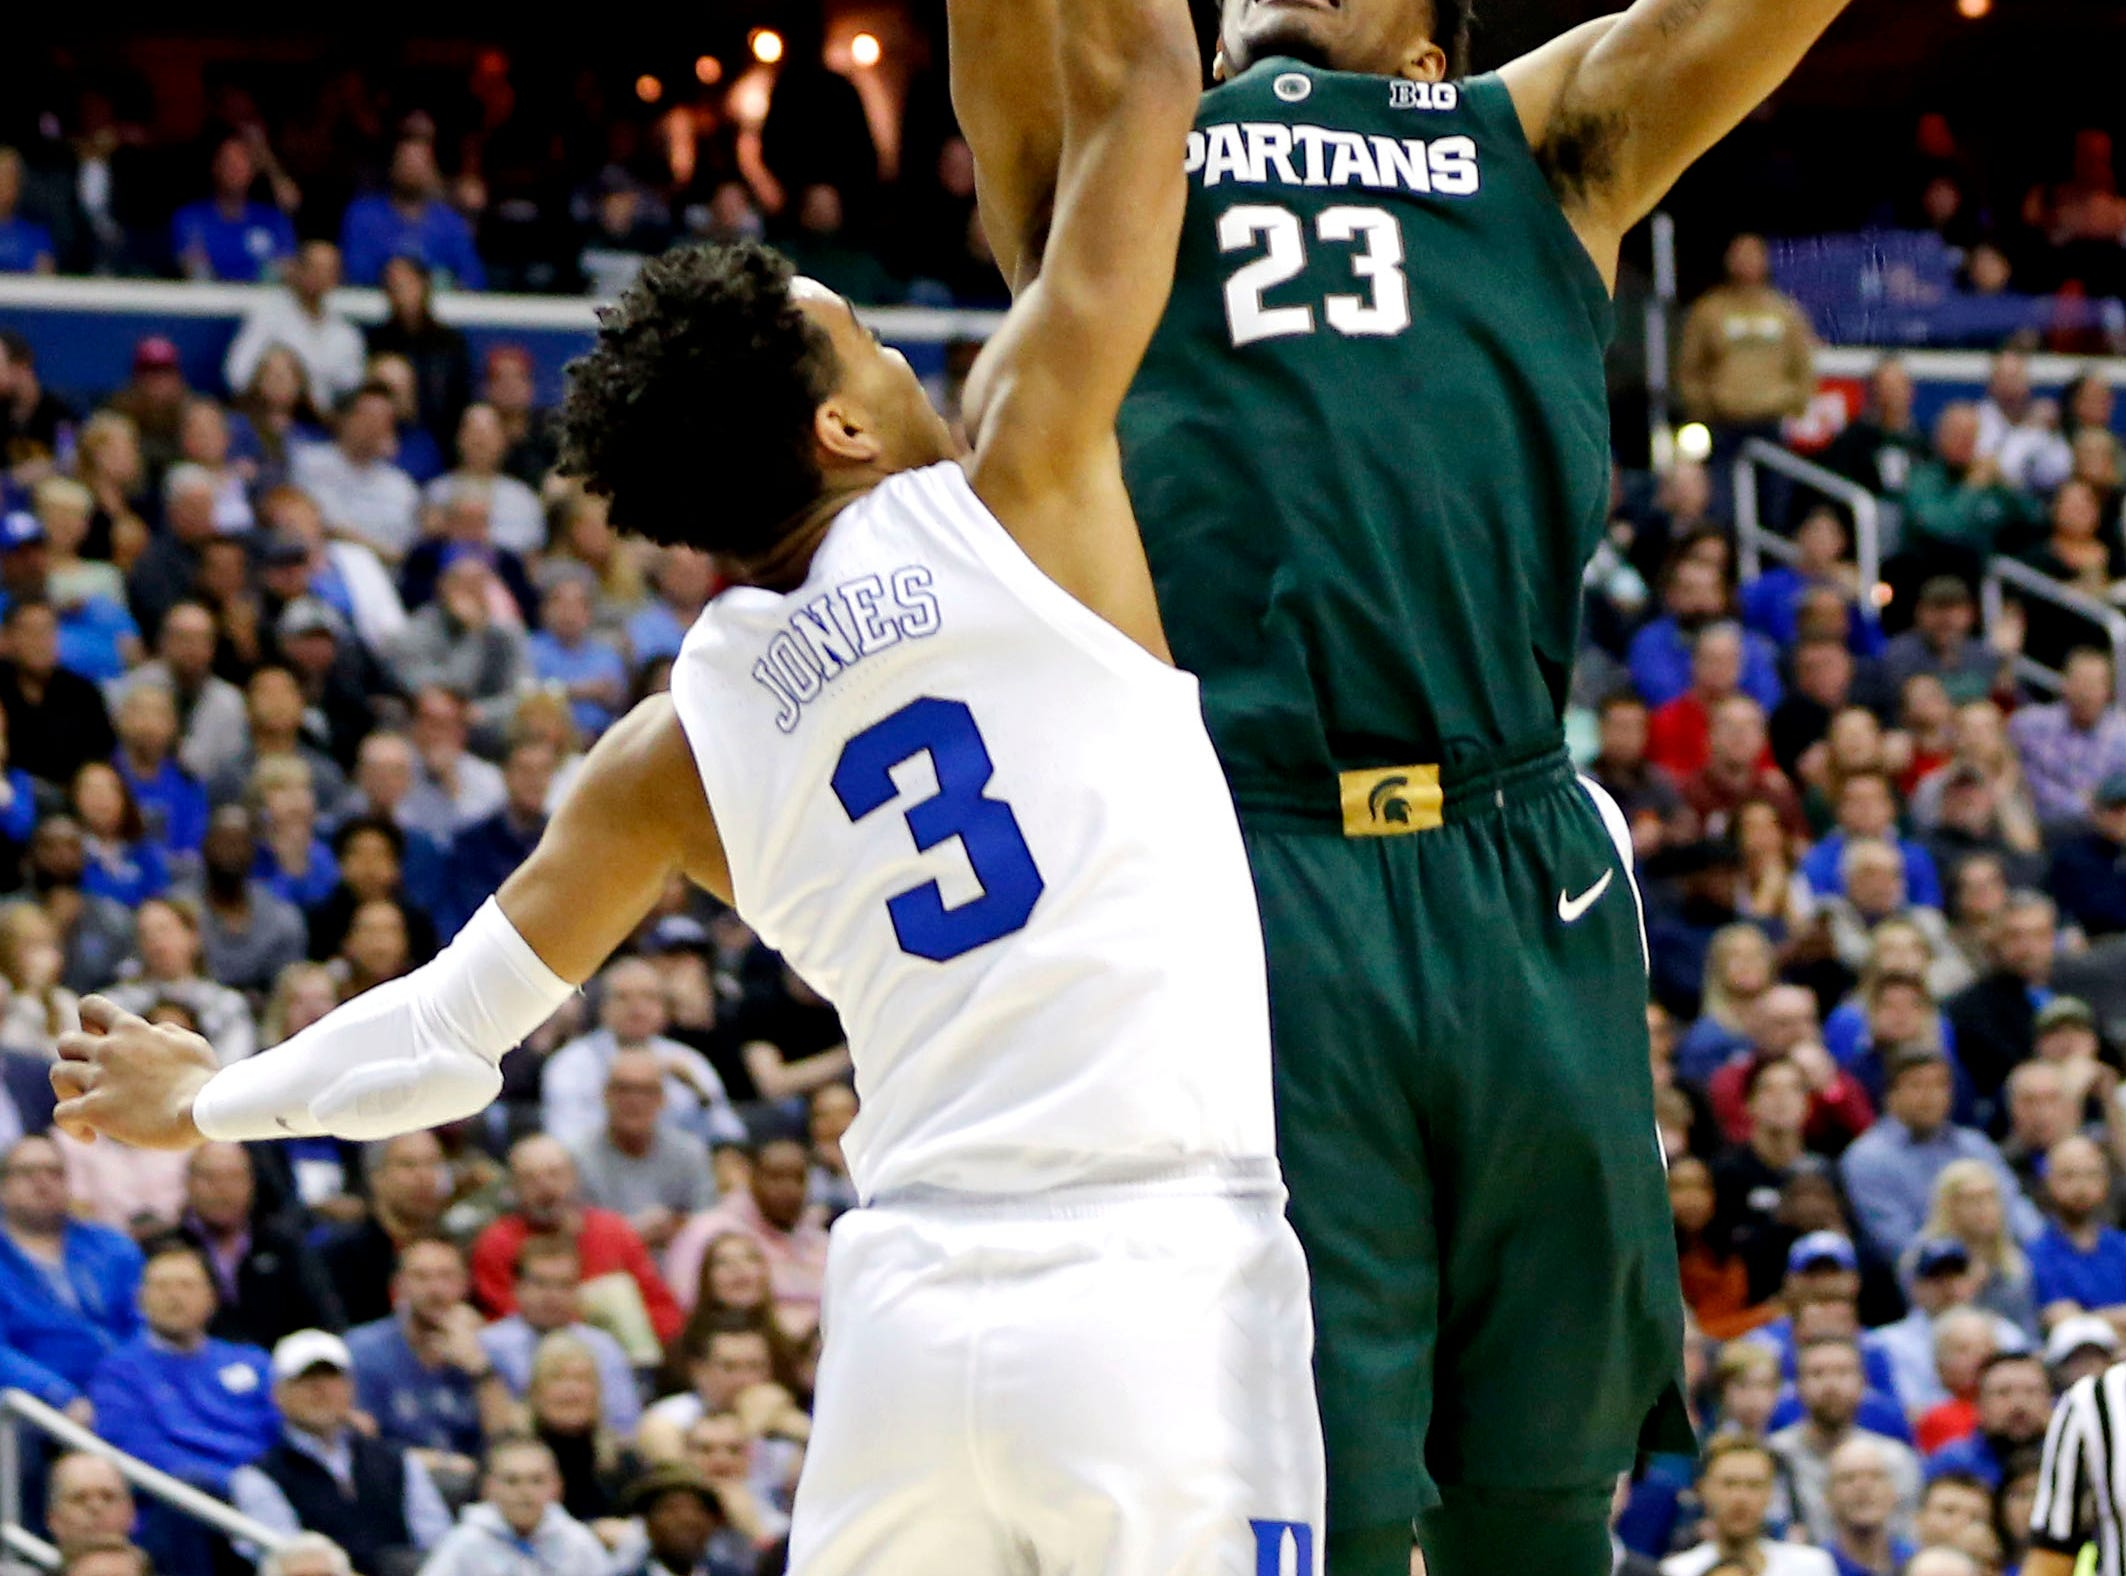 Mar 31, 2019; Washington, DC, USA; Michigan State Spartans forward Xavier Tillman (23) shoots the ball against Duke Blue Devils guard Tre Jones (3) during the first half in the championship game of the east regional of the 2019 NCAA Tournament at Capital One Arena. Mandatory Credit: Amber Searls-USA TODAY Sports